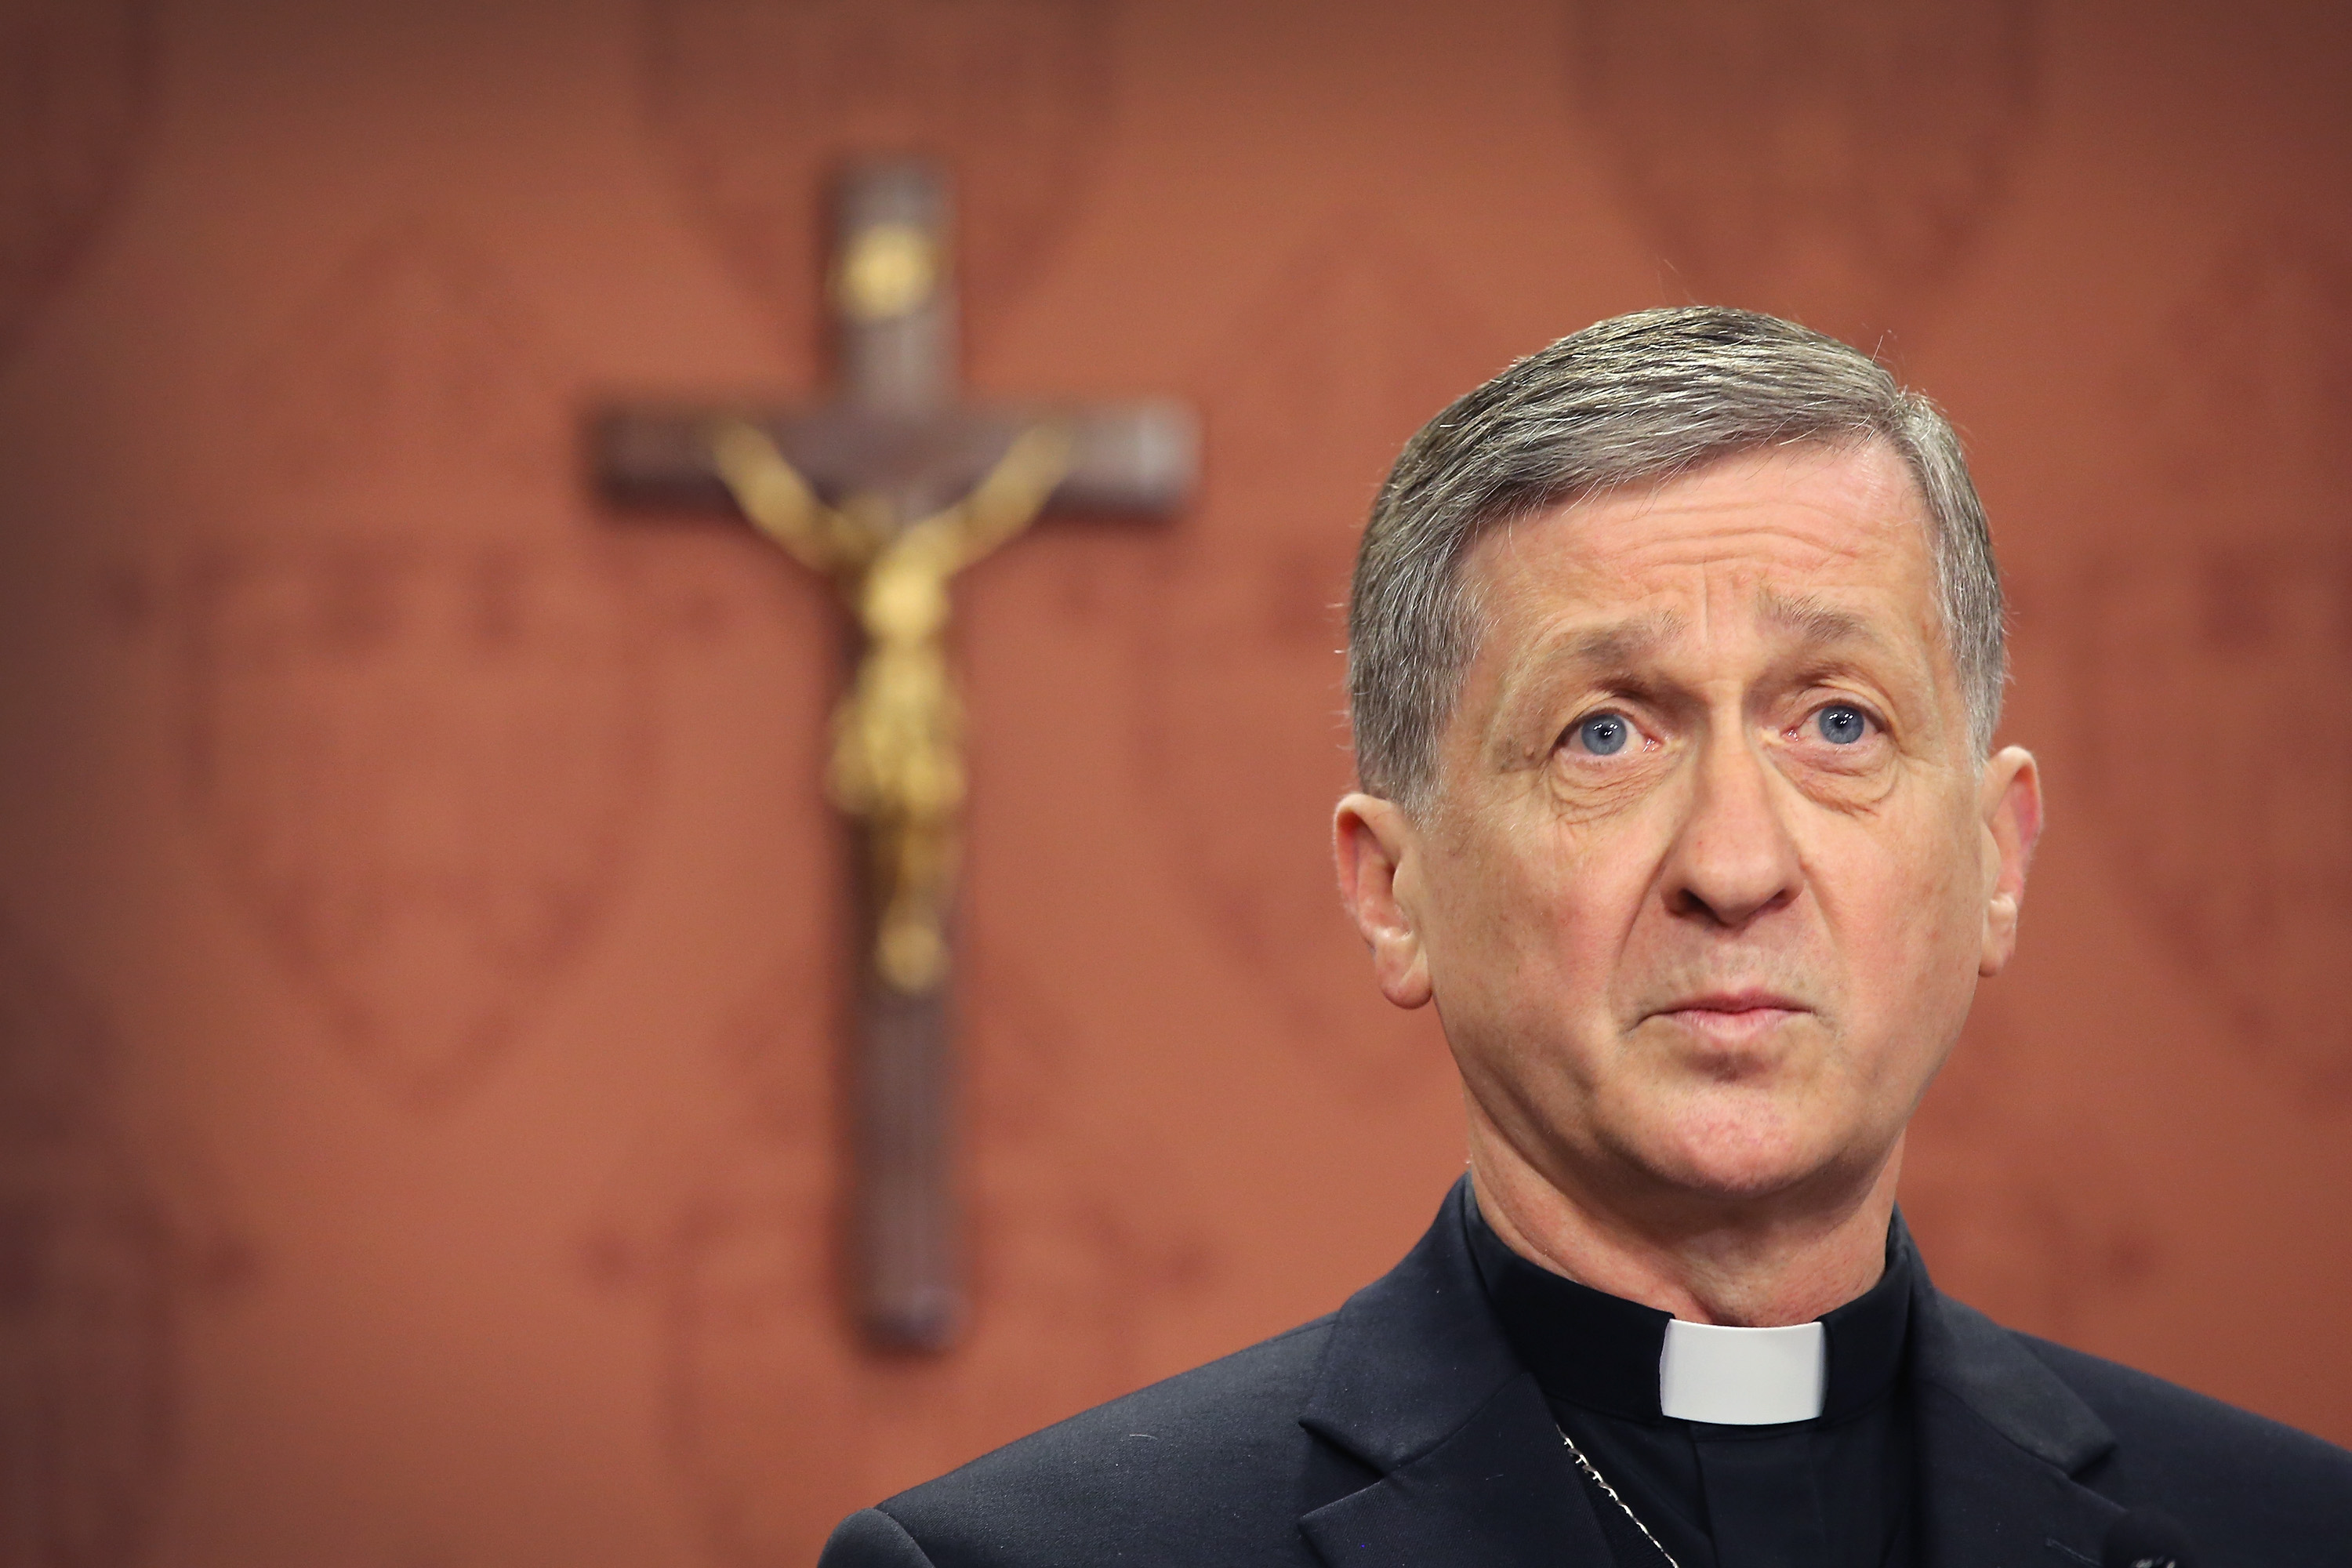 Archbishop-Elect Blase Cupich speaks to the press on September 20, 2014 in Chicago, Illinois. Cupich, who served as bishop in Spokane, Washington, will succeed Chicago's Francis Cardinal George, who has been fighting a long battle with cancer, to become the 9th archbishop of Chicago. This is the first time in the history of the Chicago Archdiocese that a new leader has been appointed while the former is still alive.